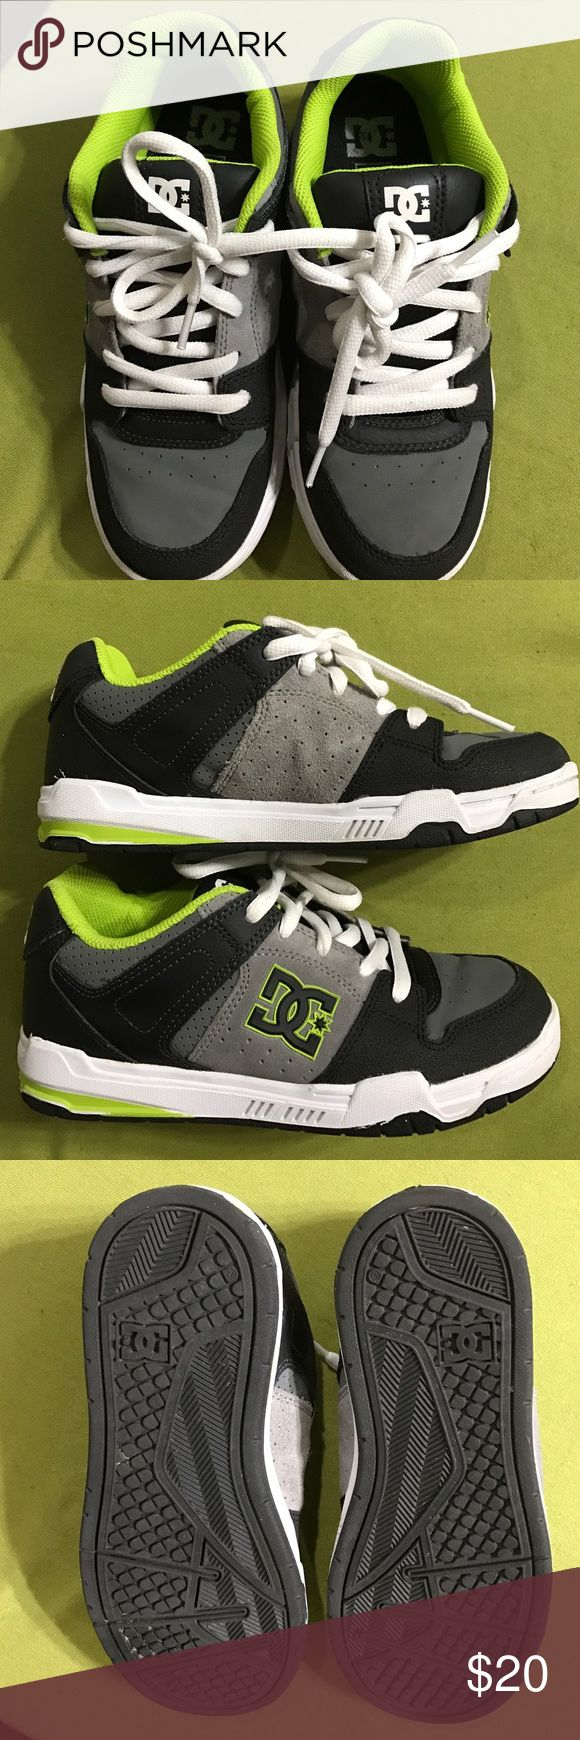 BOYS- DC sneakers BOYS - DC sneakers. Only worn once. Excellent condition 😊 DC Shoes Sneakers